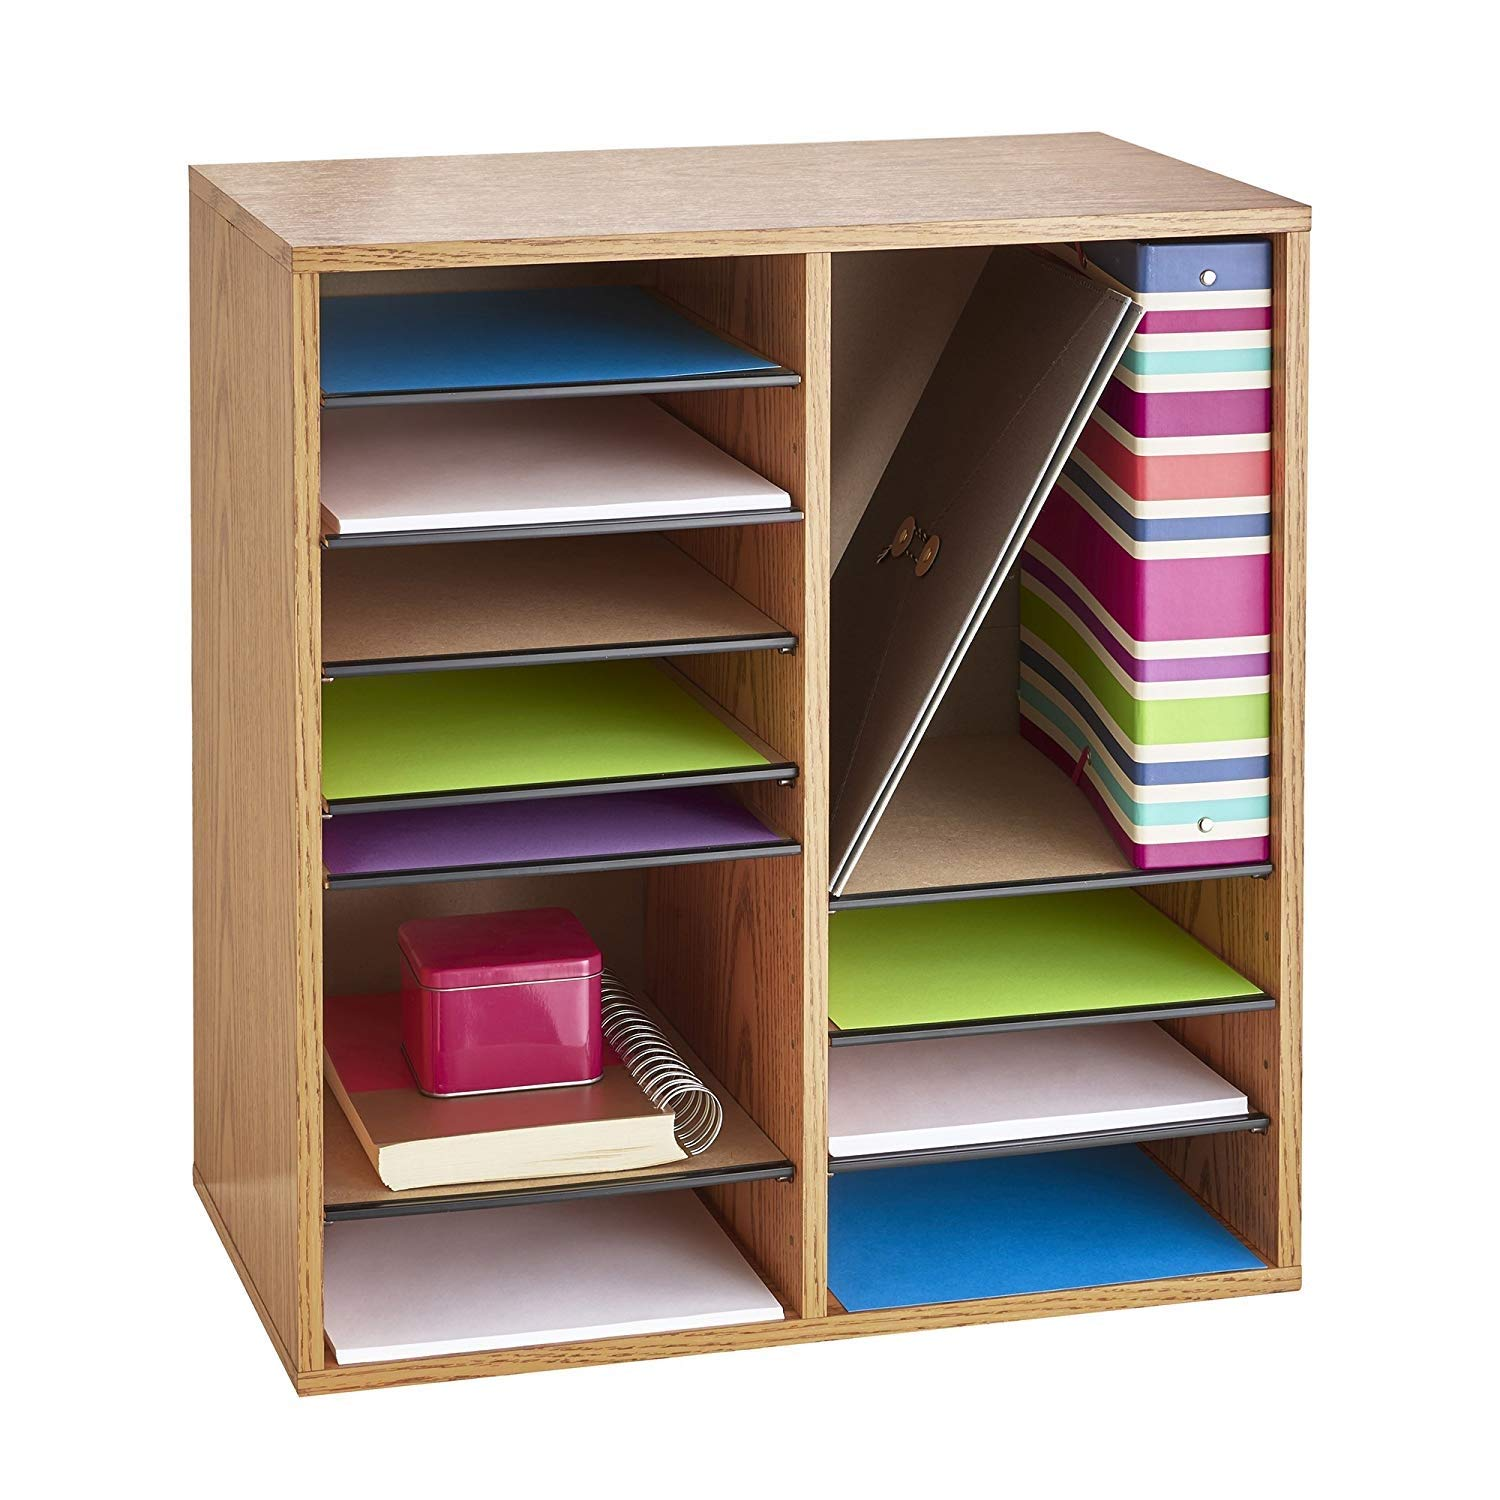 Safco Products 9422MO Wood Adjustable Literature Organizer, 16 Compartment, Oak